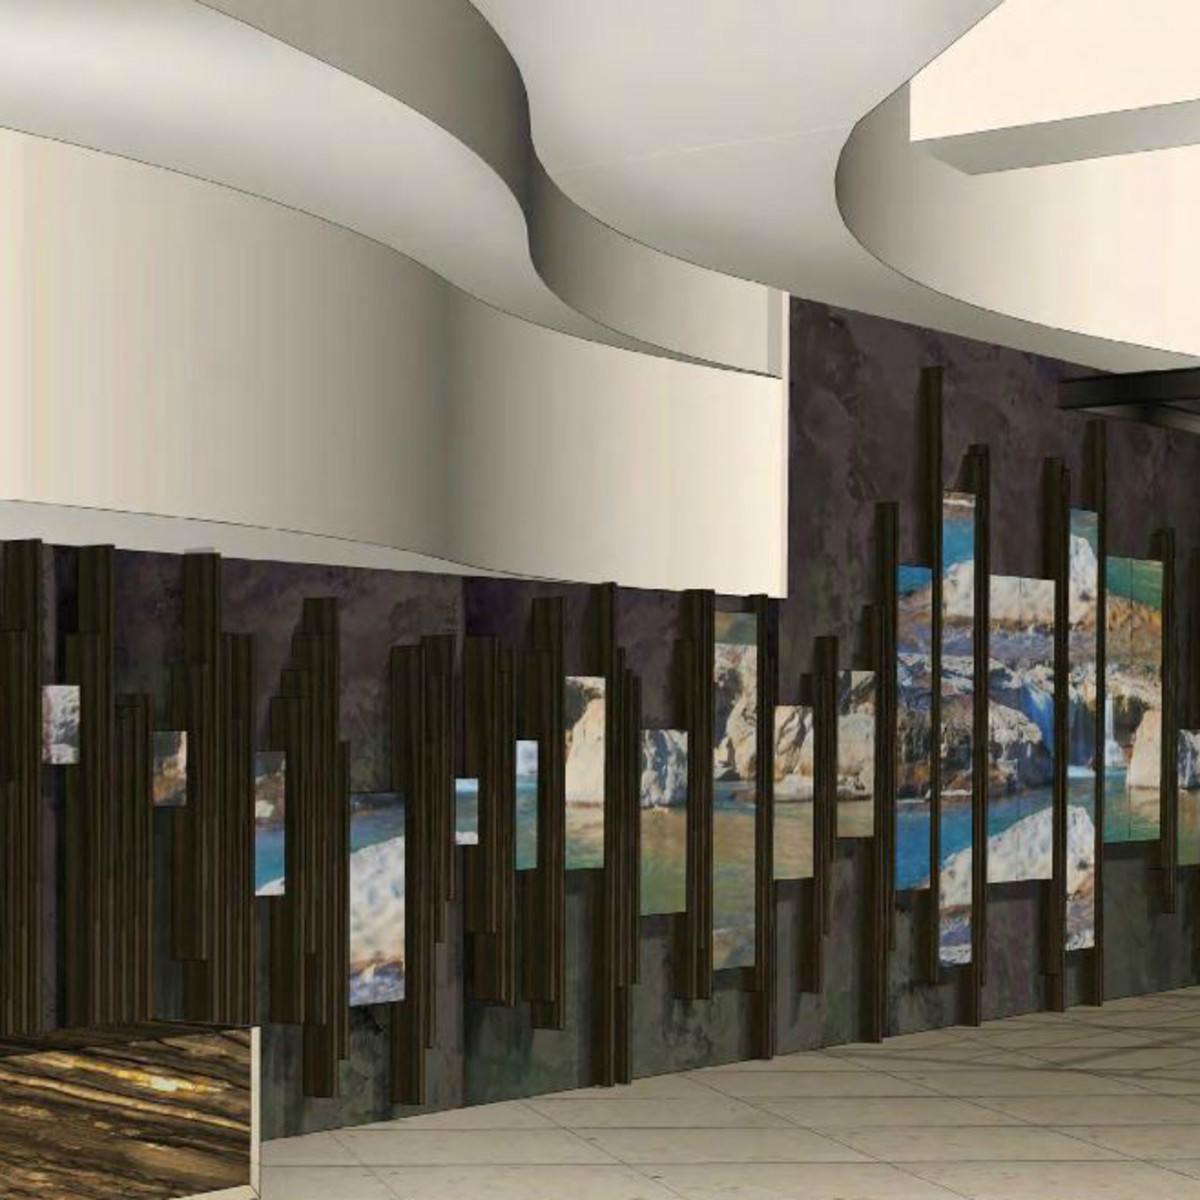 Hilton Austin downtown hotel 2016 renovation rendering lobby digital art wall